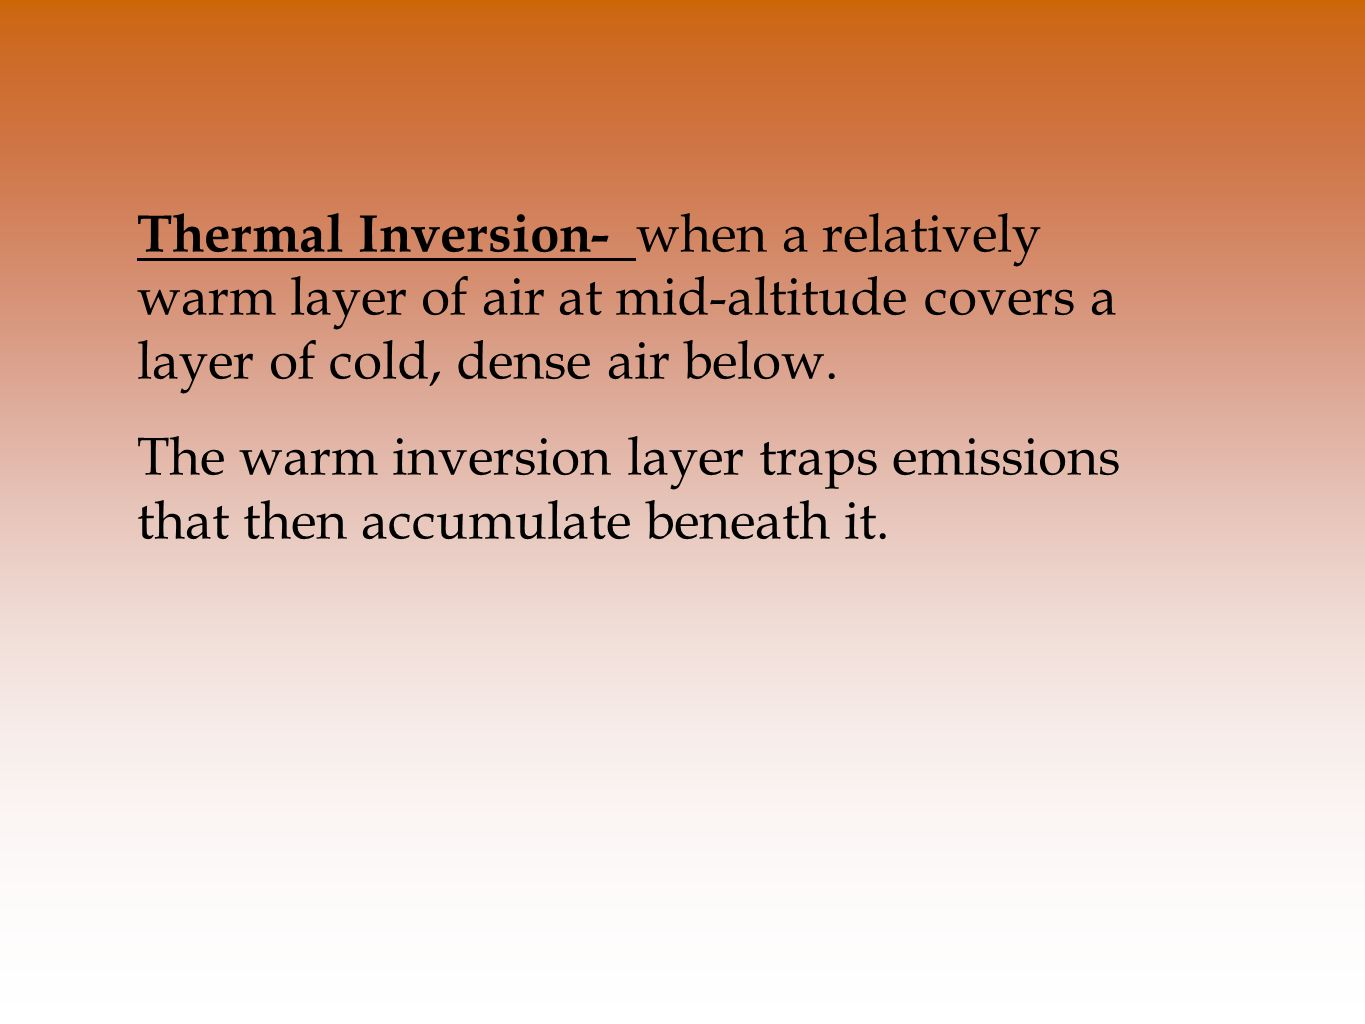 Thermal Inversion- when a relatively warm layer of air at mid-altitude covers a layer of cold, dense air below.